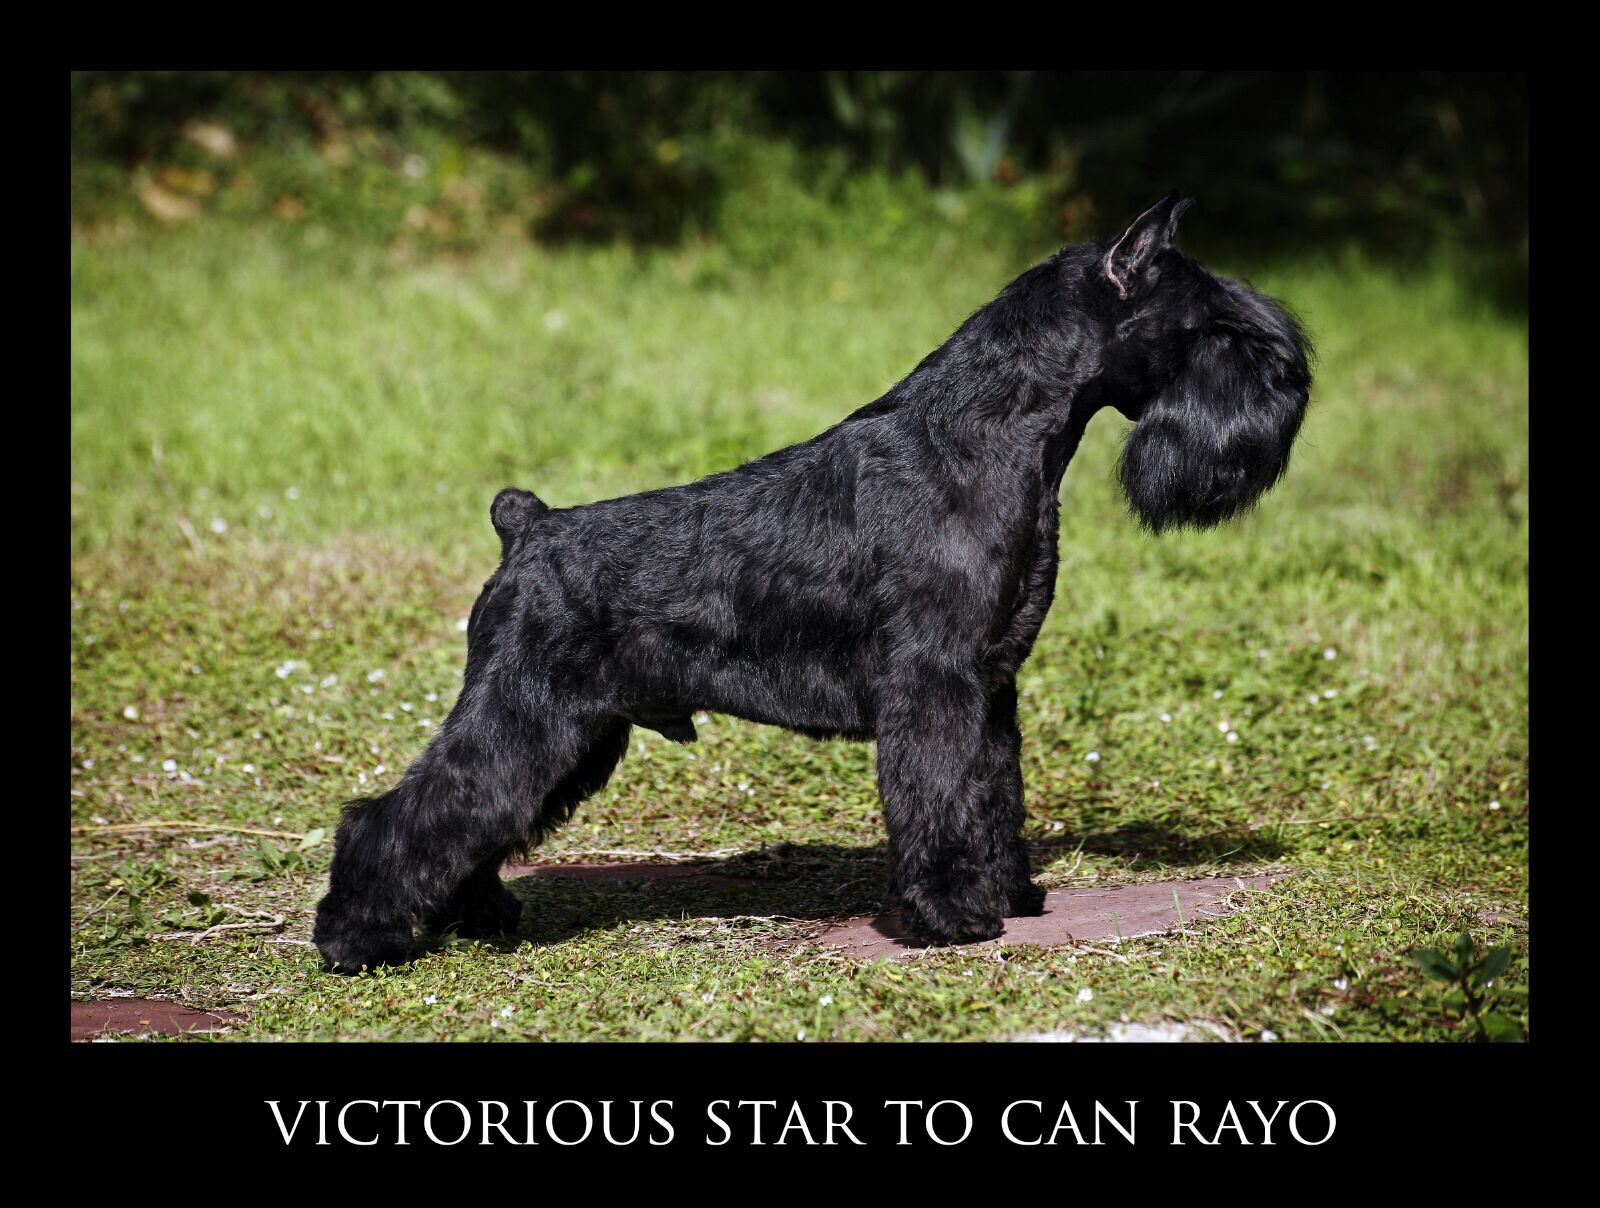 Victorious Star to Can Rayo-Black Miniature Schnauzer